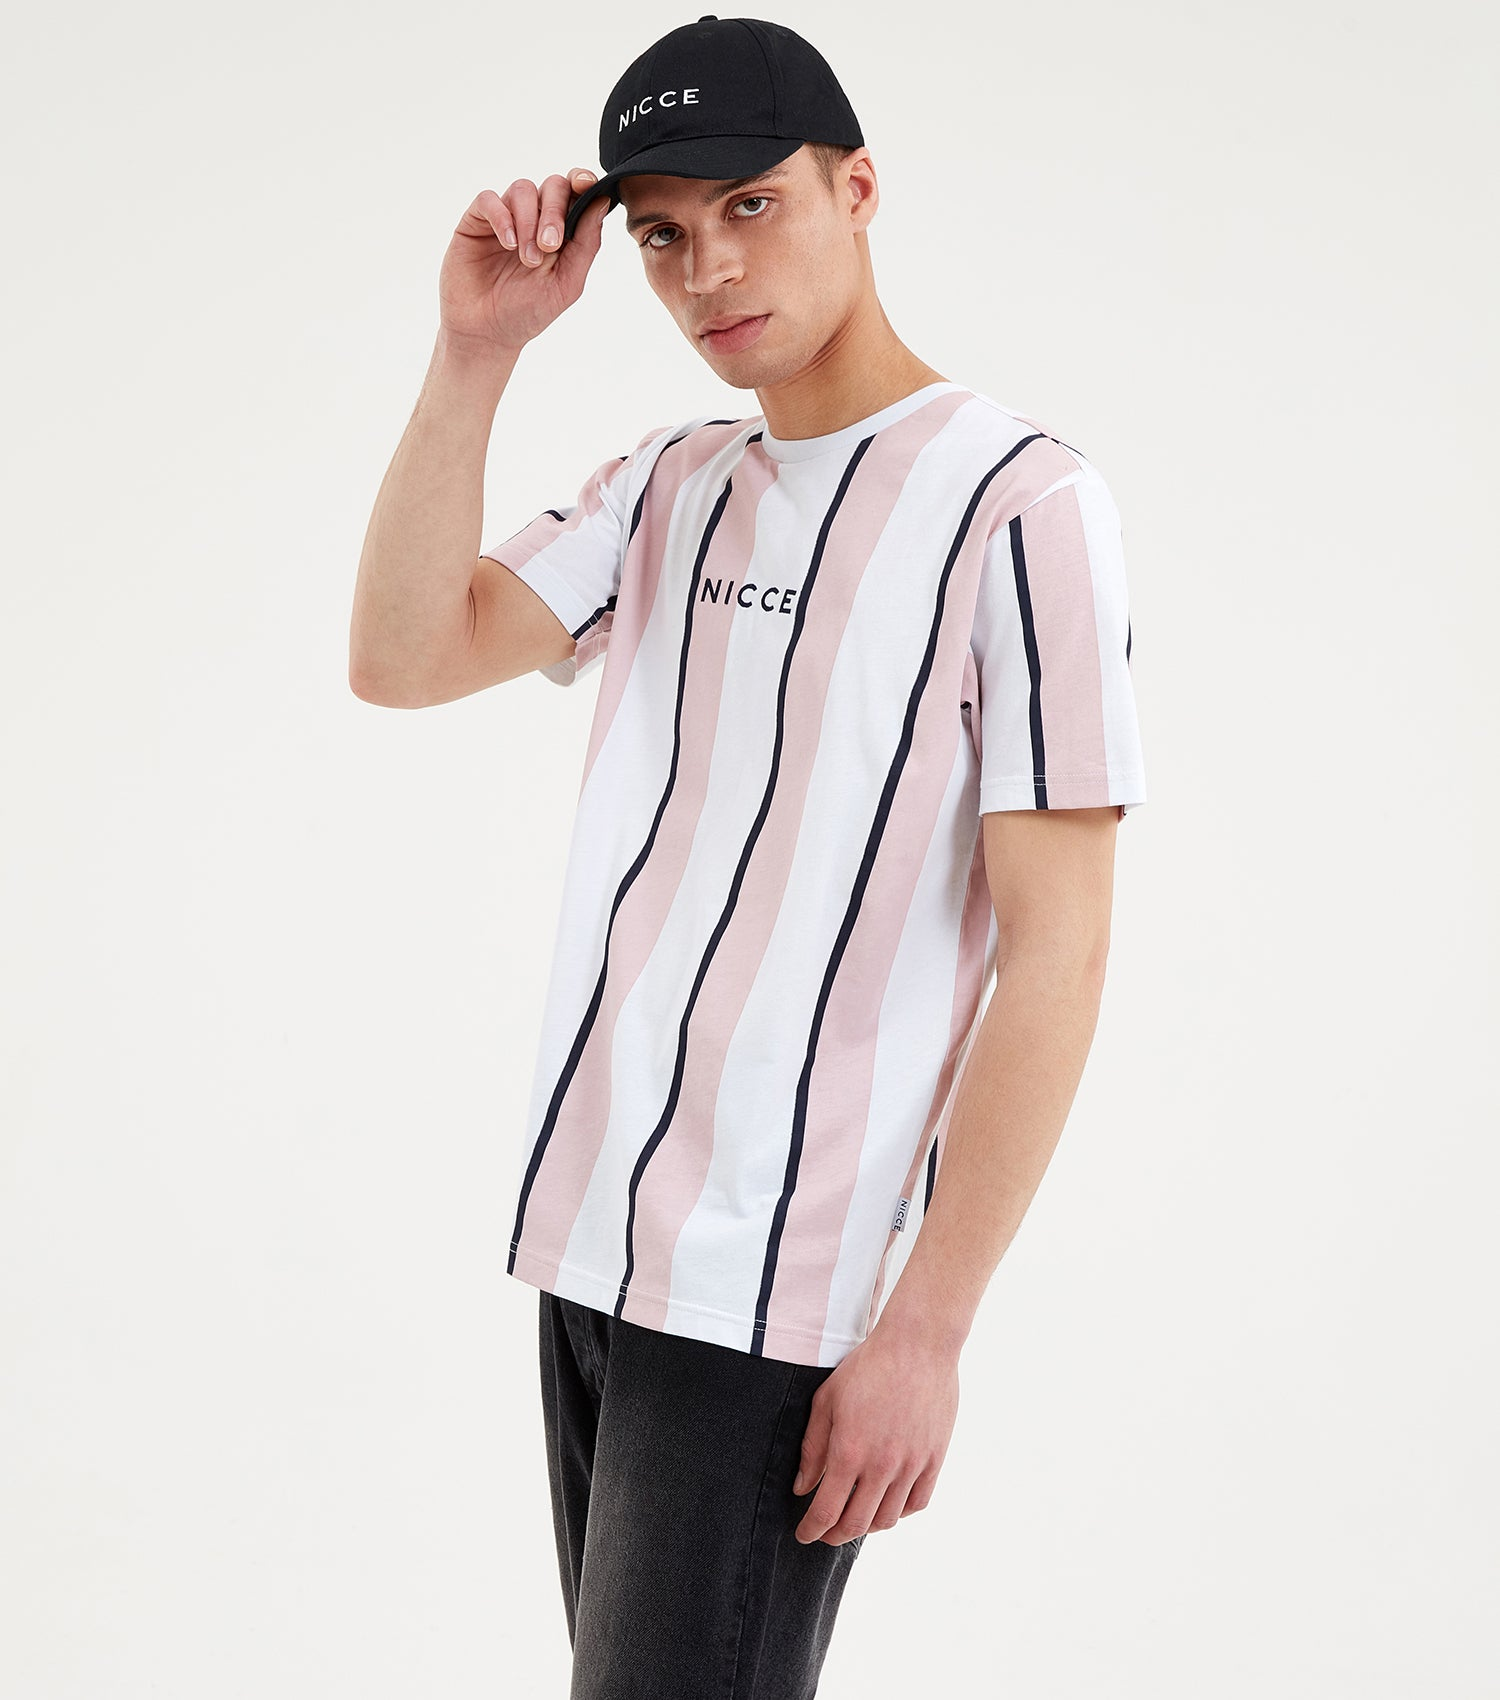 Stripe t-shirt in white, pink and navy. Featuring vertical stripe design in pink and navy, crew neck, short sleeves and printed centre logo. Pair with shorts or joggers.